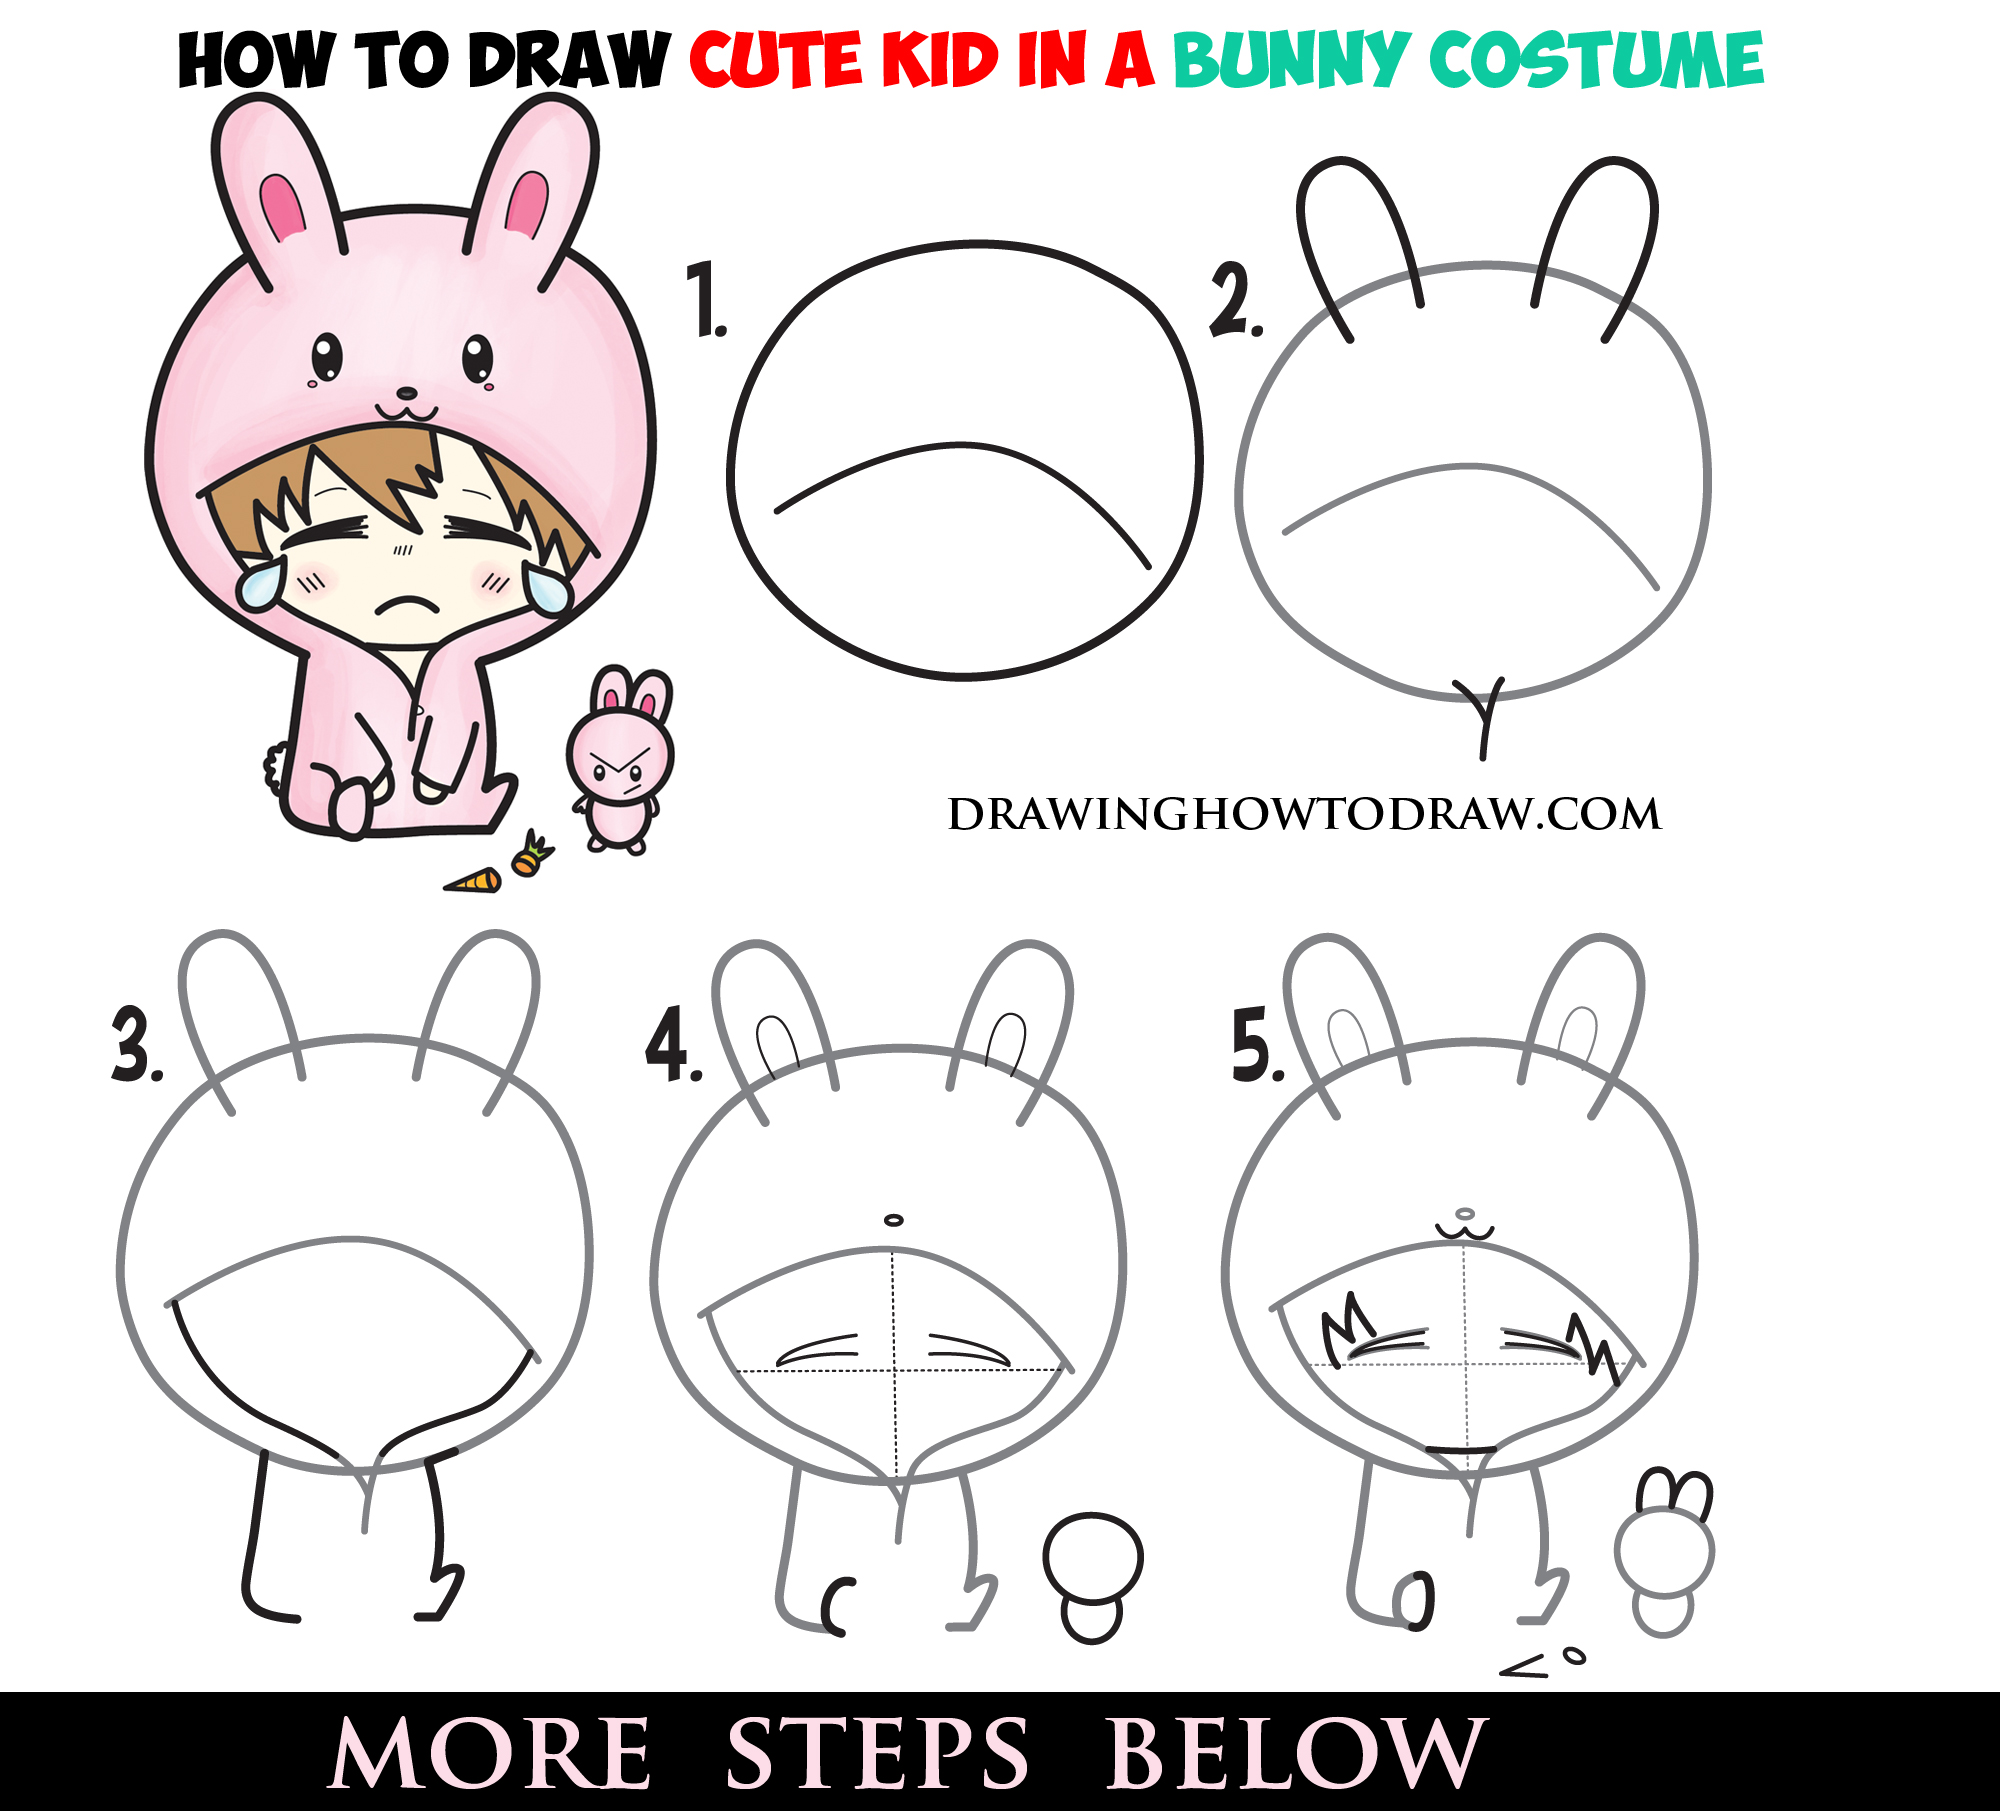 learn how to draw a cute chibi character in bunny rabbit onesie pajamas costume simple step by step drawing tutorial for beginners - Simple Drawing For Kid